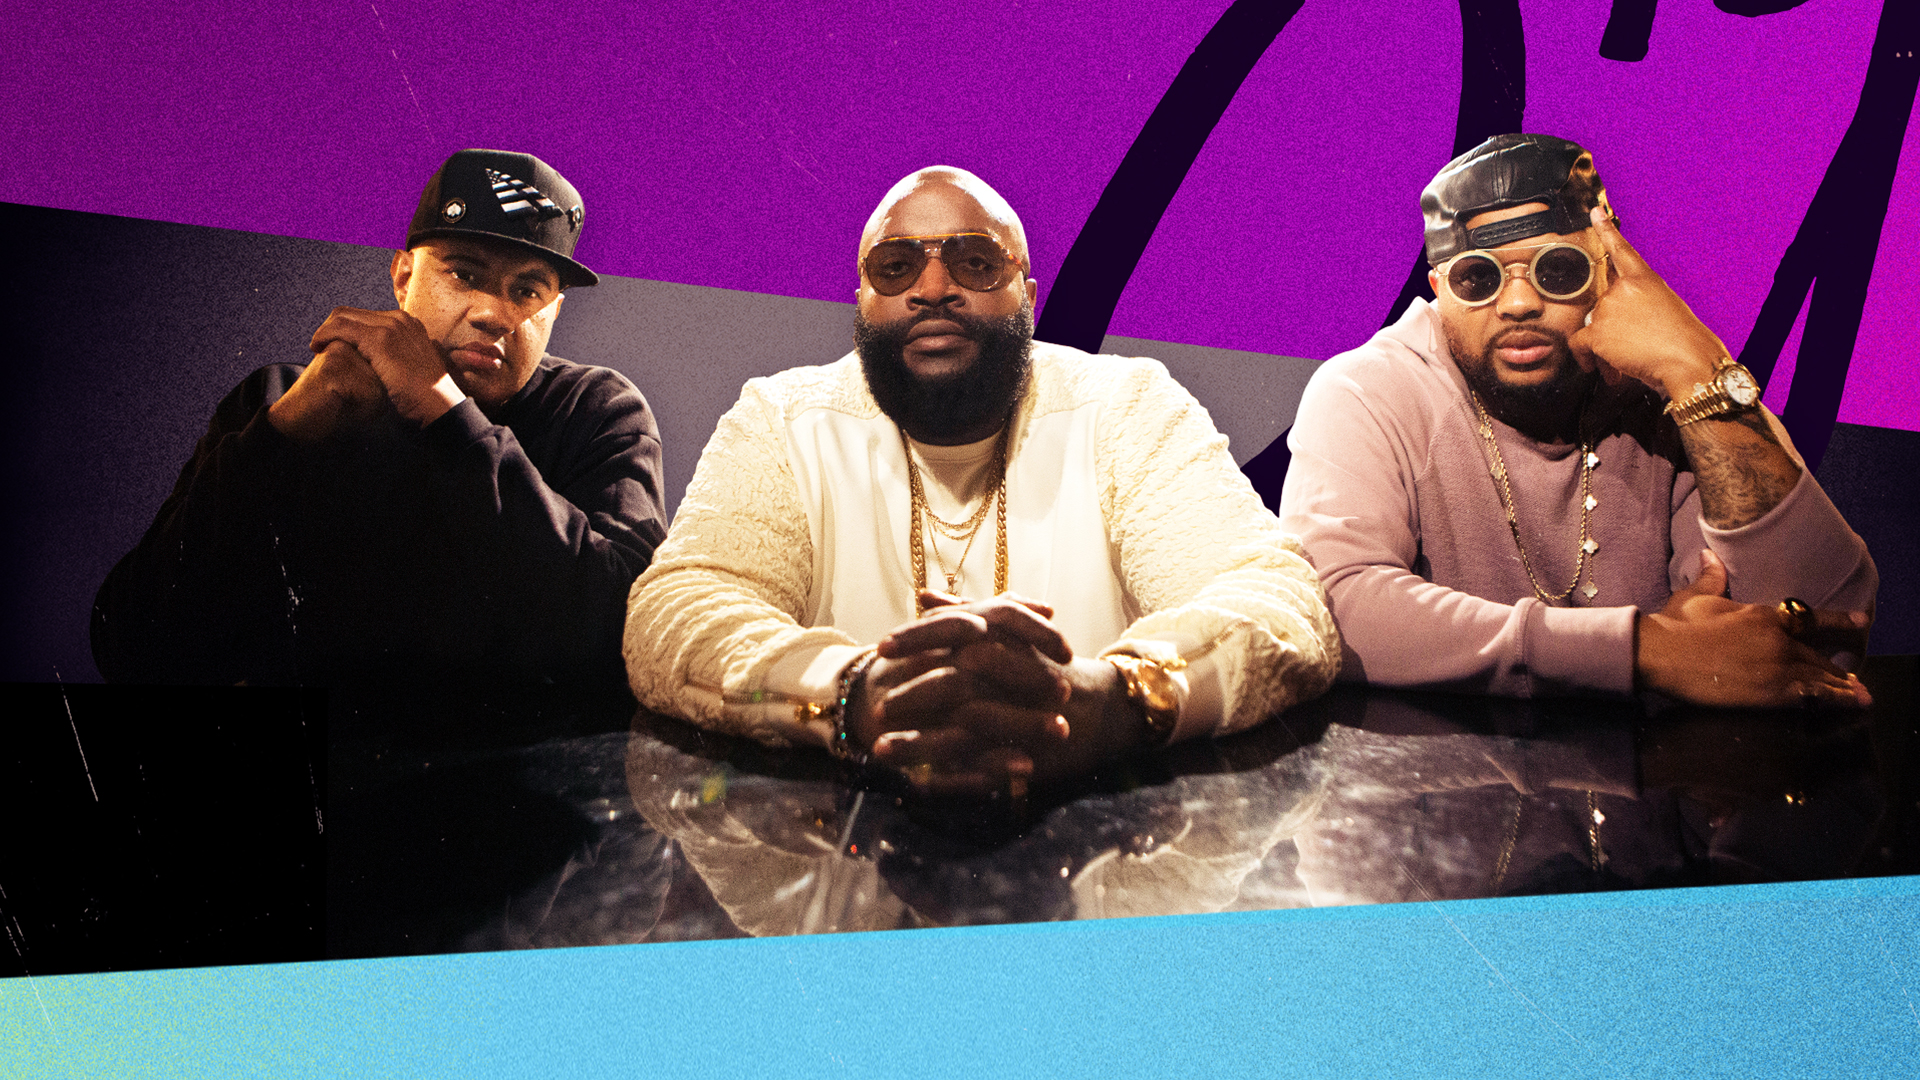 VH1's New Show Is ALL About Record Labels… But Are Labels Necessary?